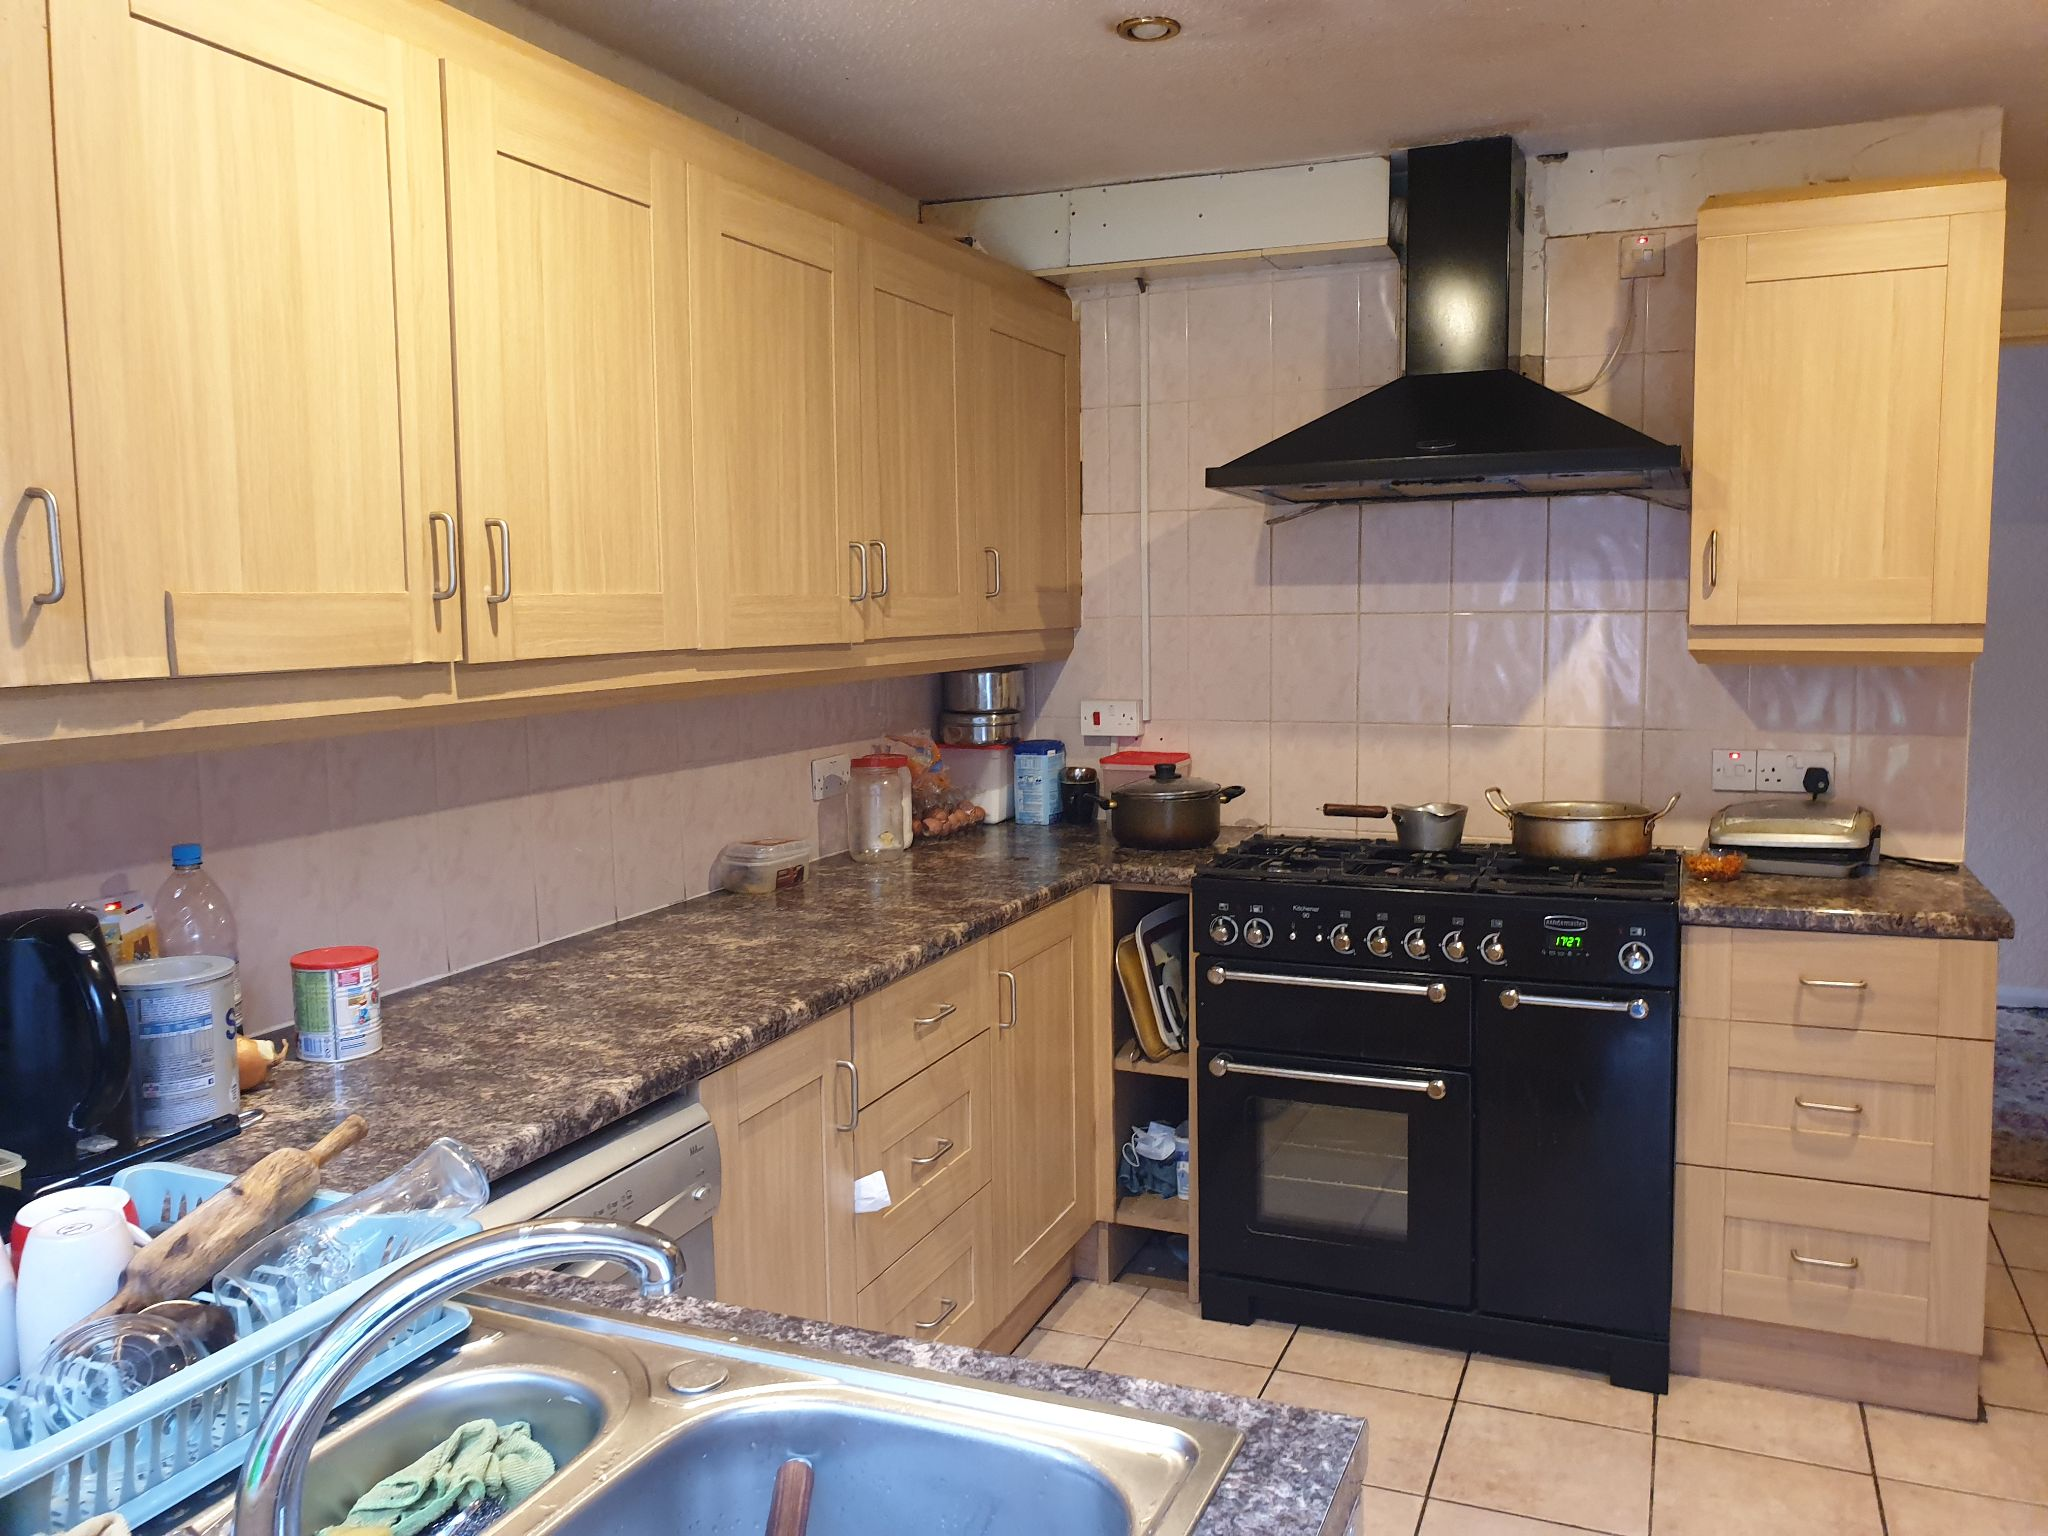 4 bedroom detached house For Sale in Leicester - Photograph 7.